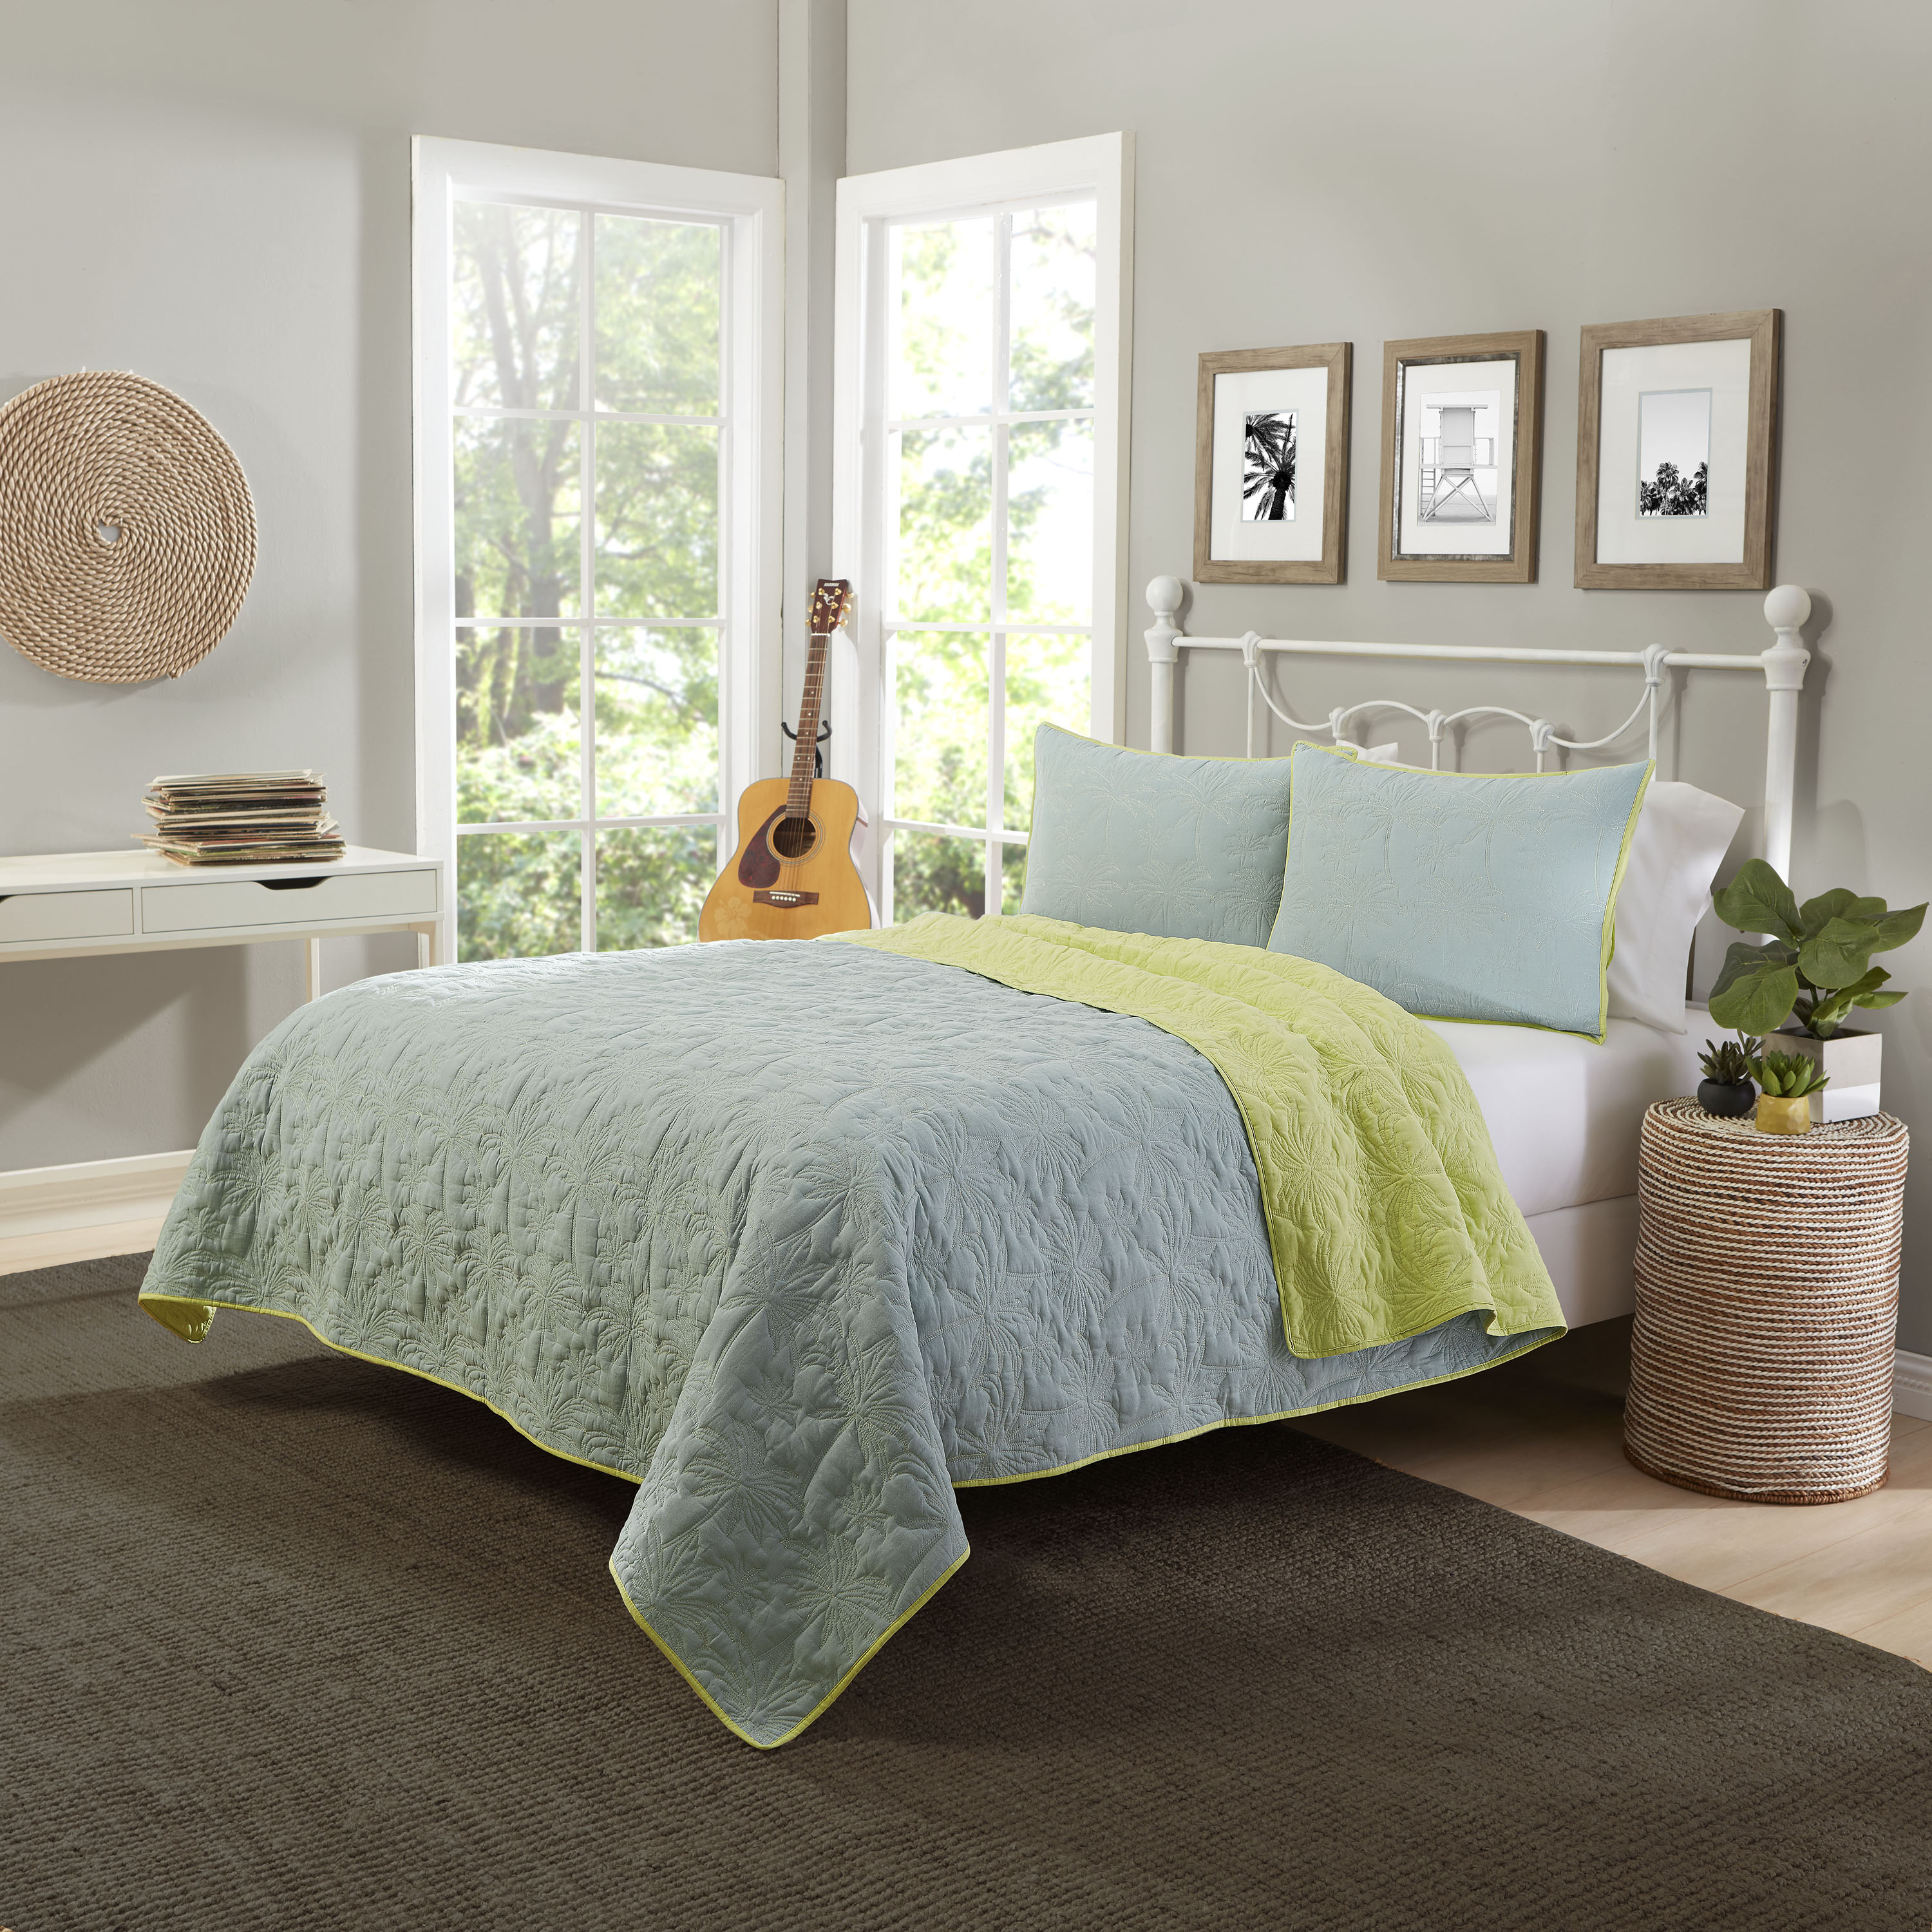 Mainstays Palm Reversible 3-Piece Bedding Quilt Set